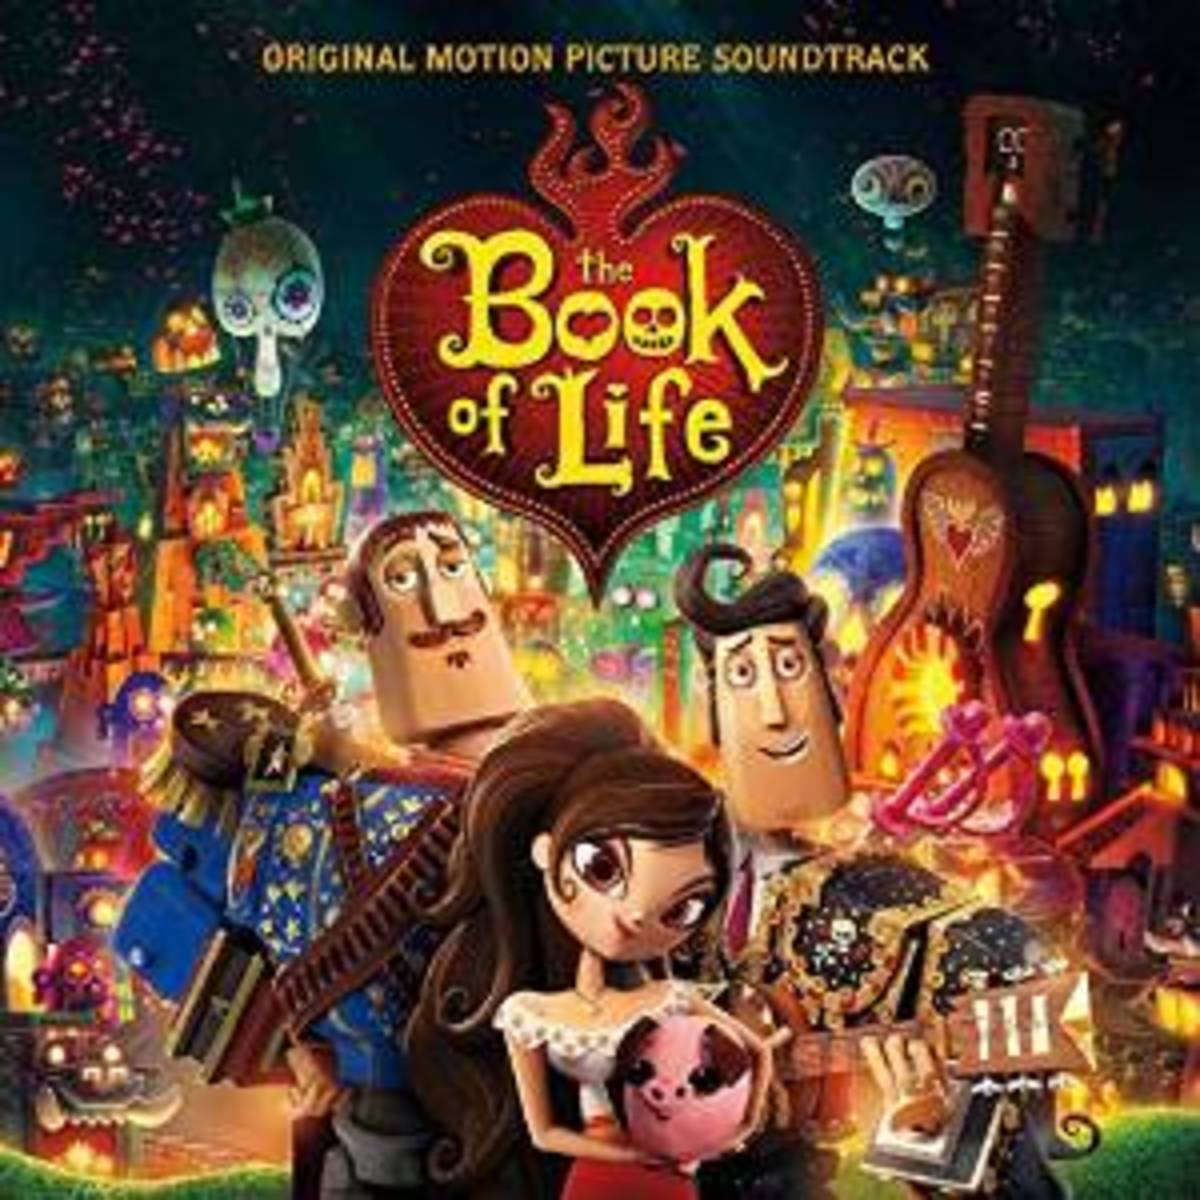 The Book of Life Soundtrack includes a Mumford and Sons cover you'll love.